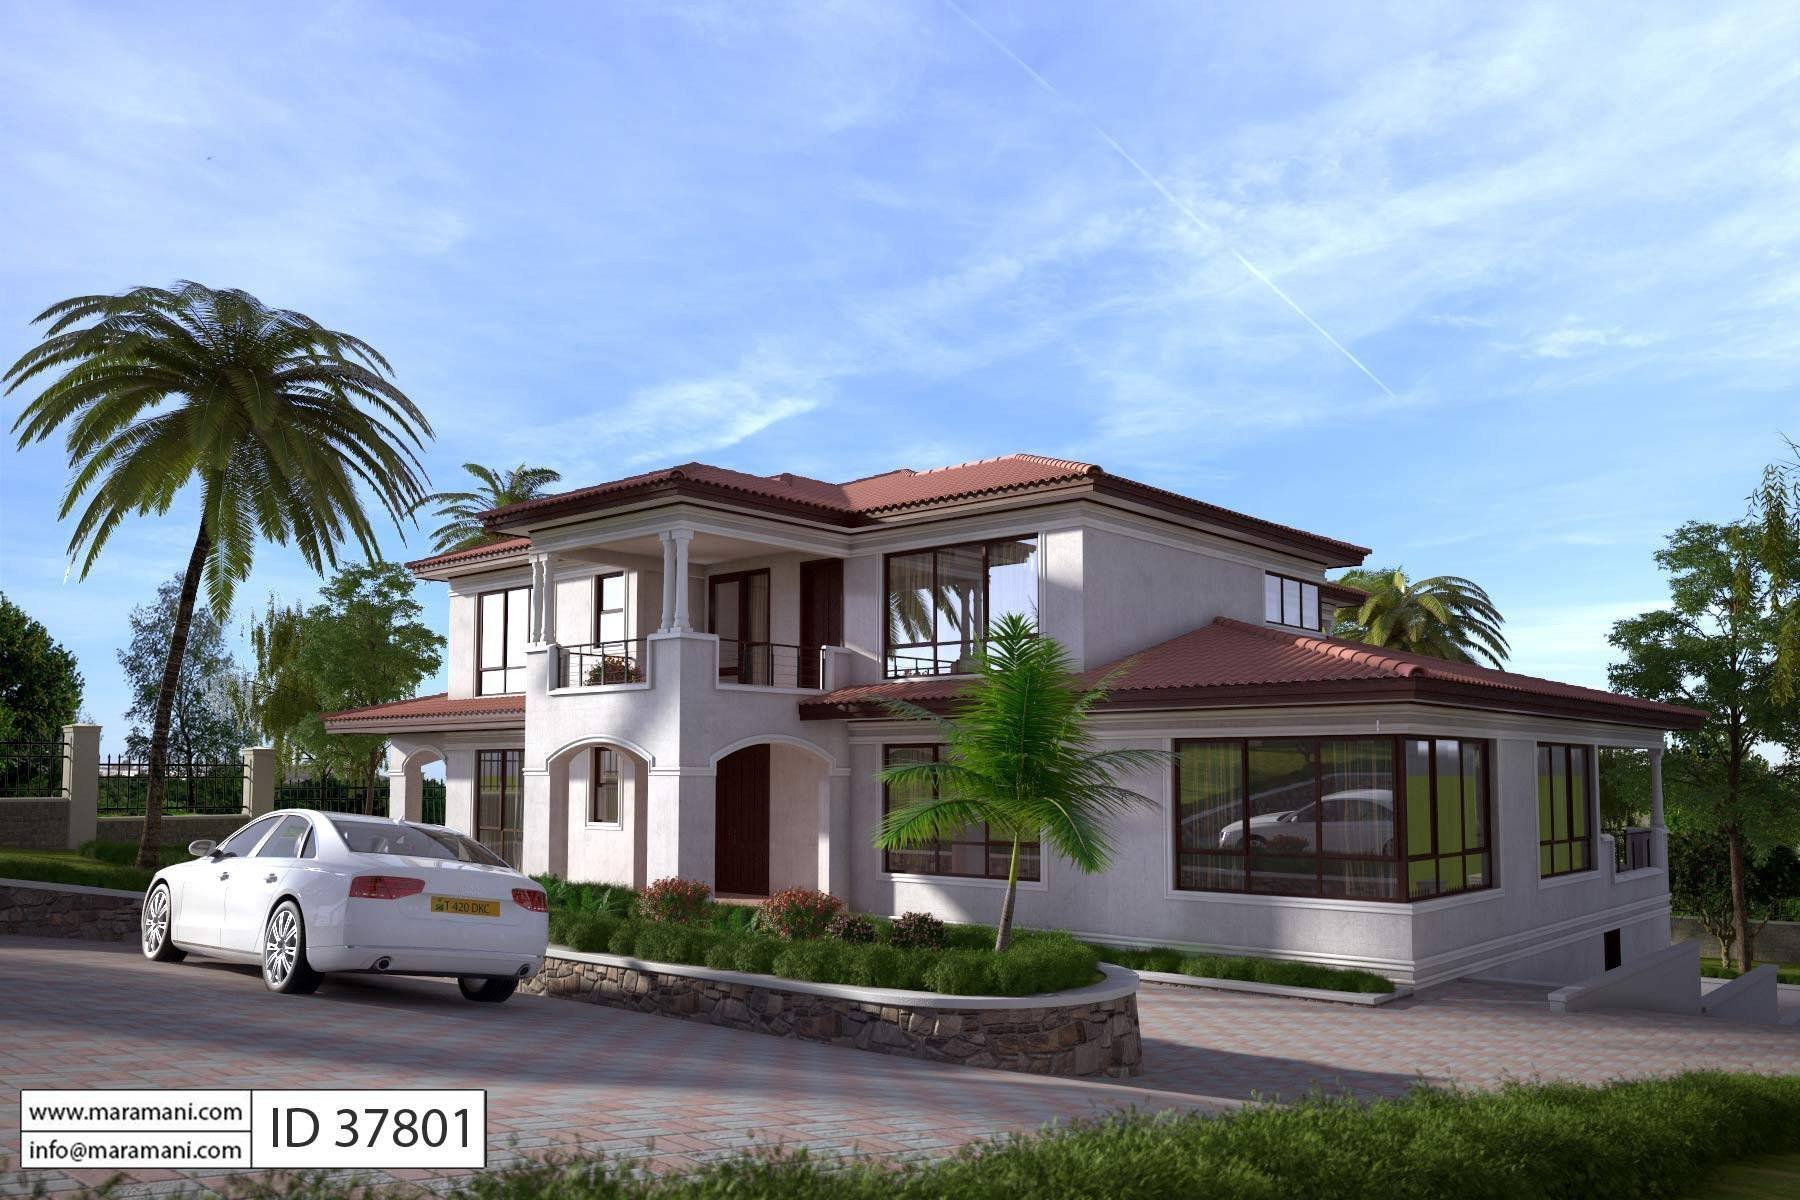 Best 7 Bedroom House Design Id 37801 House Designs By Maramani With Pictures